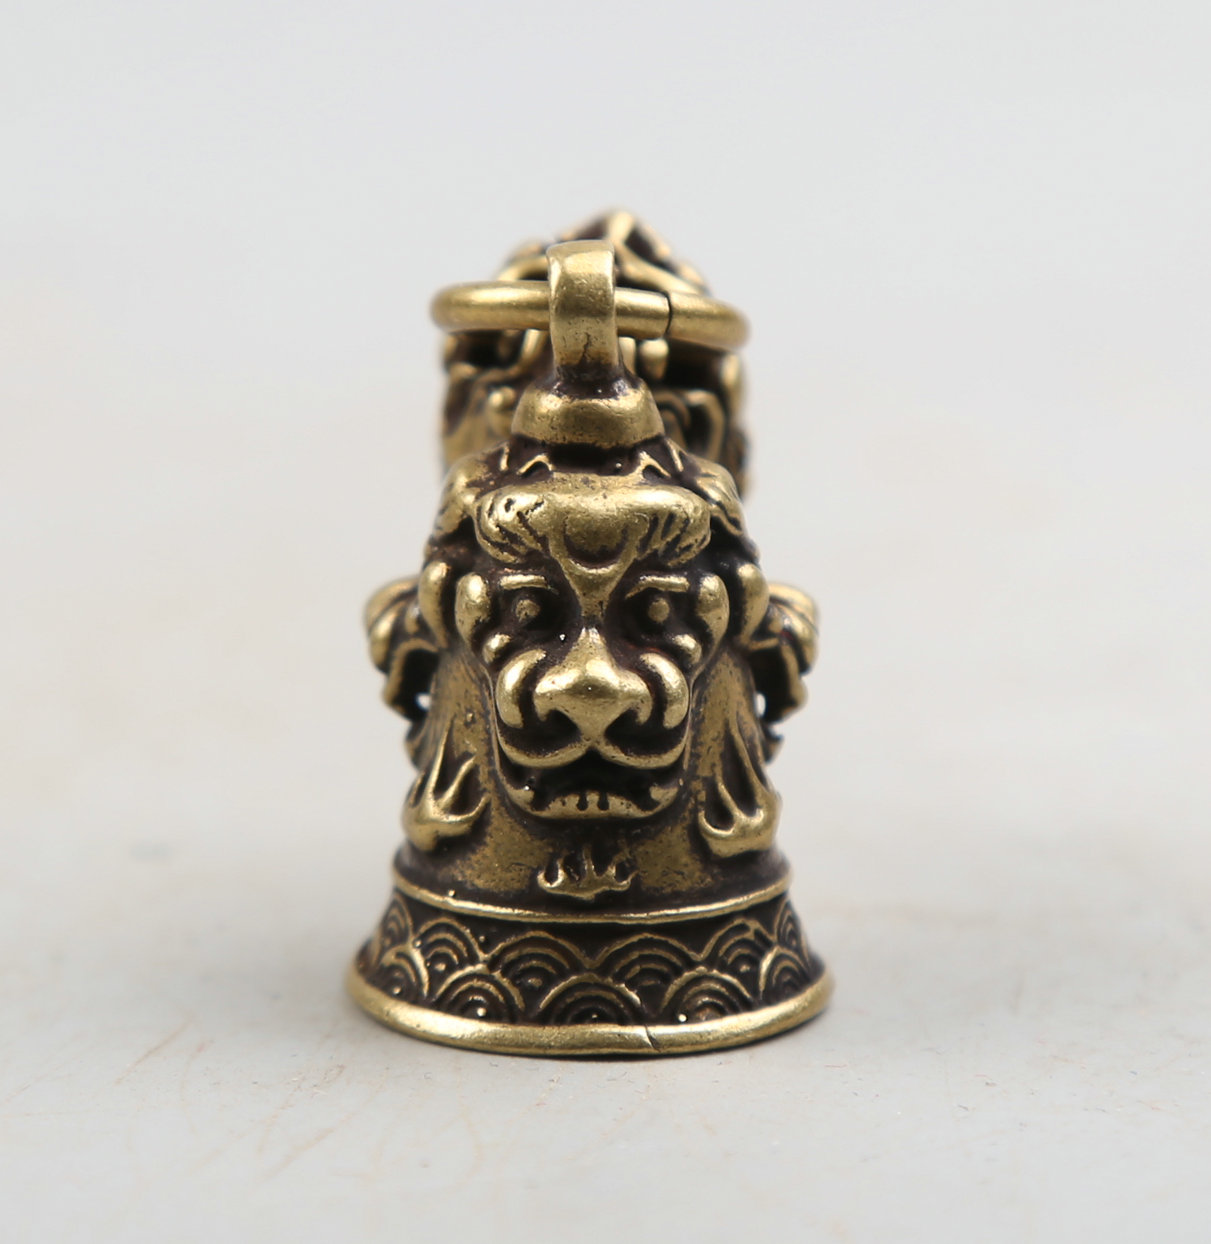 60MM 2 4 quot Collect Curio Rare China Fengshui Small Bronze Exquisite Animal Lion Head Animal Head Small Bell Pendant Statuary 31g in Statues amp Sculptures from Home amp Garden